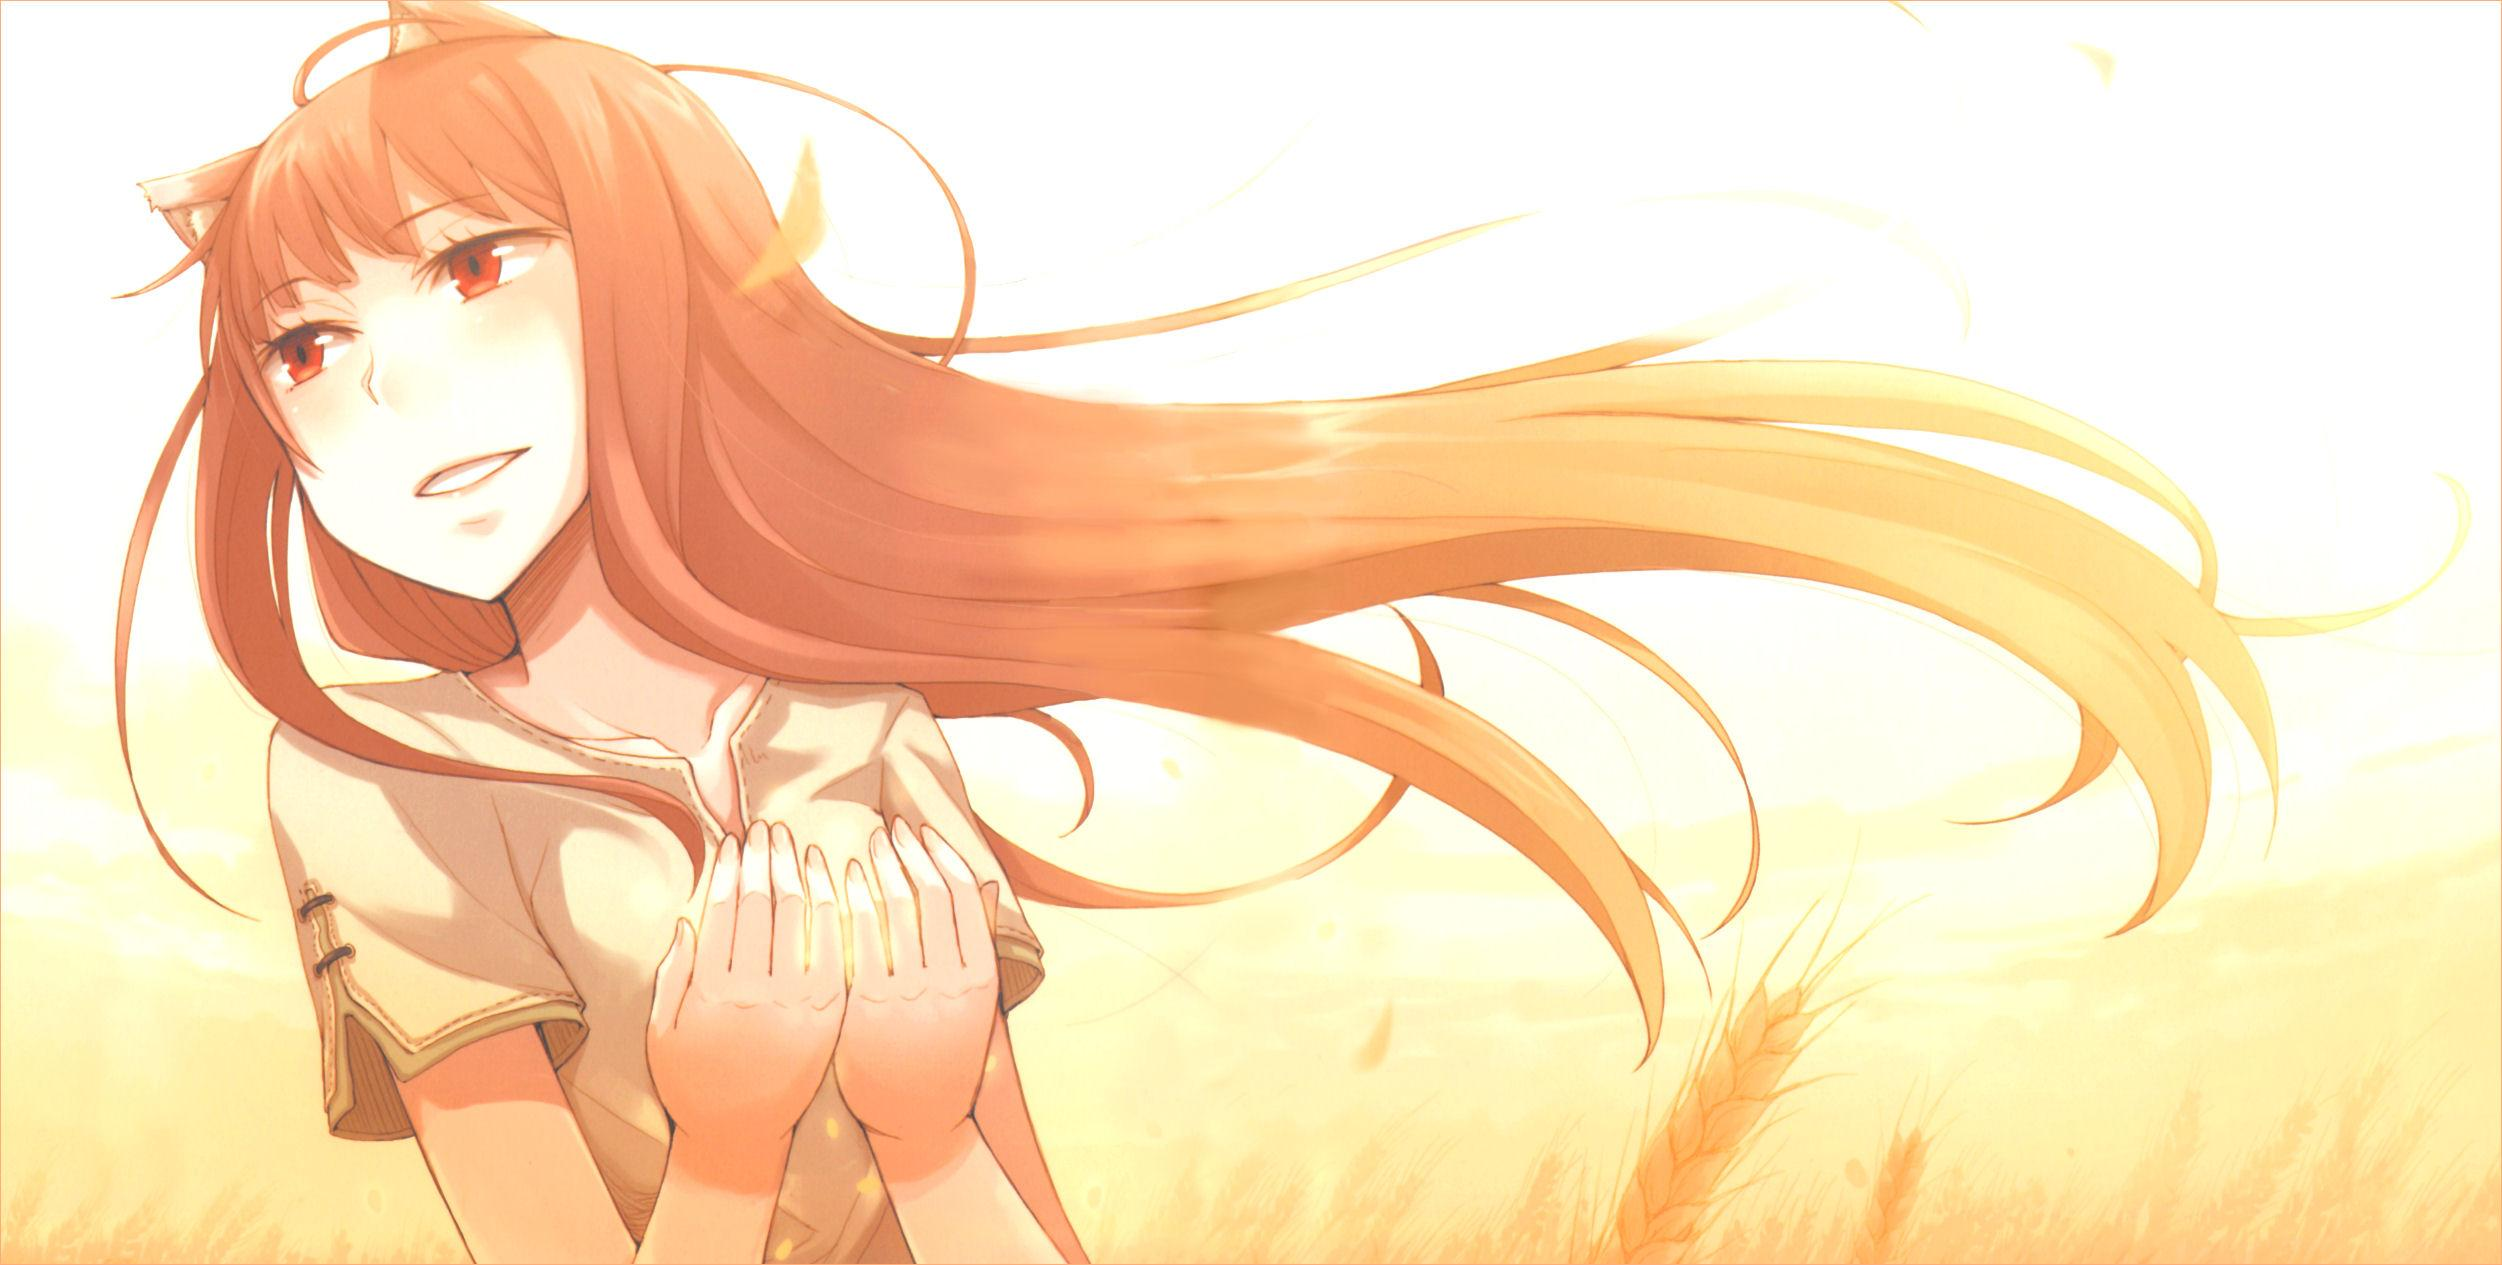 Spice And Wolf wallpapers HD quality